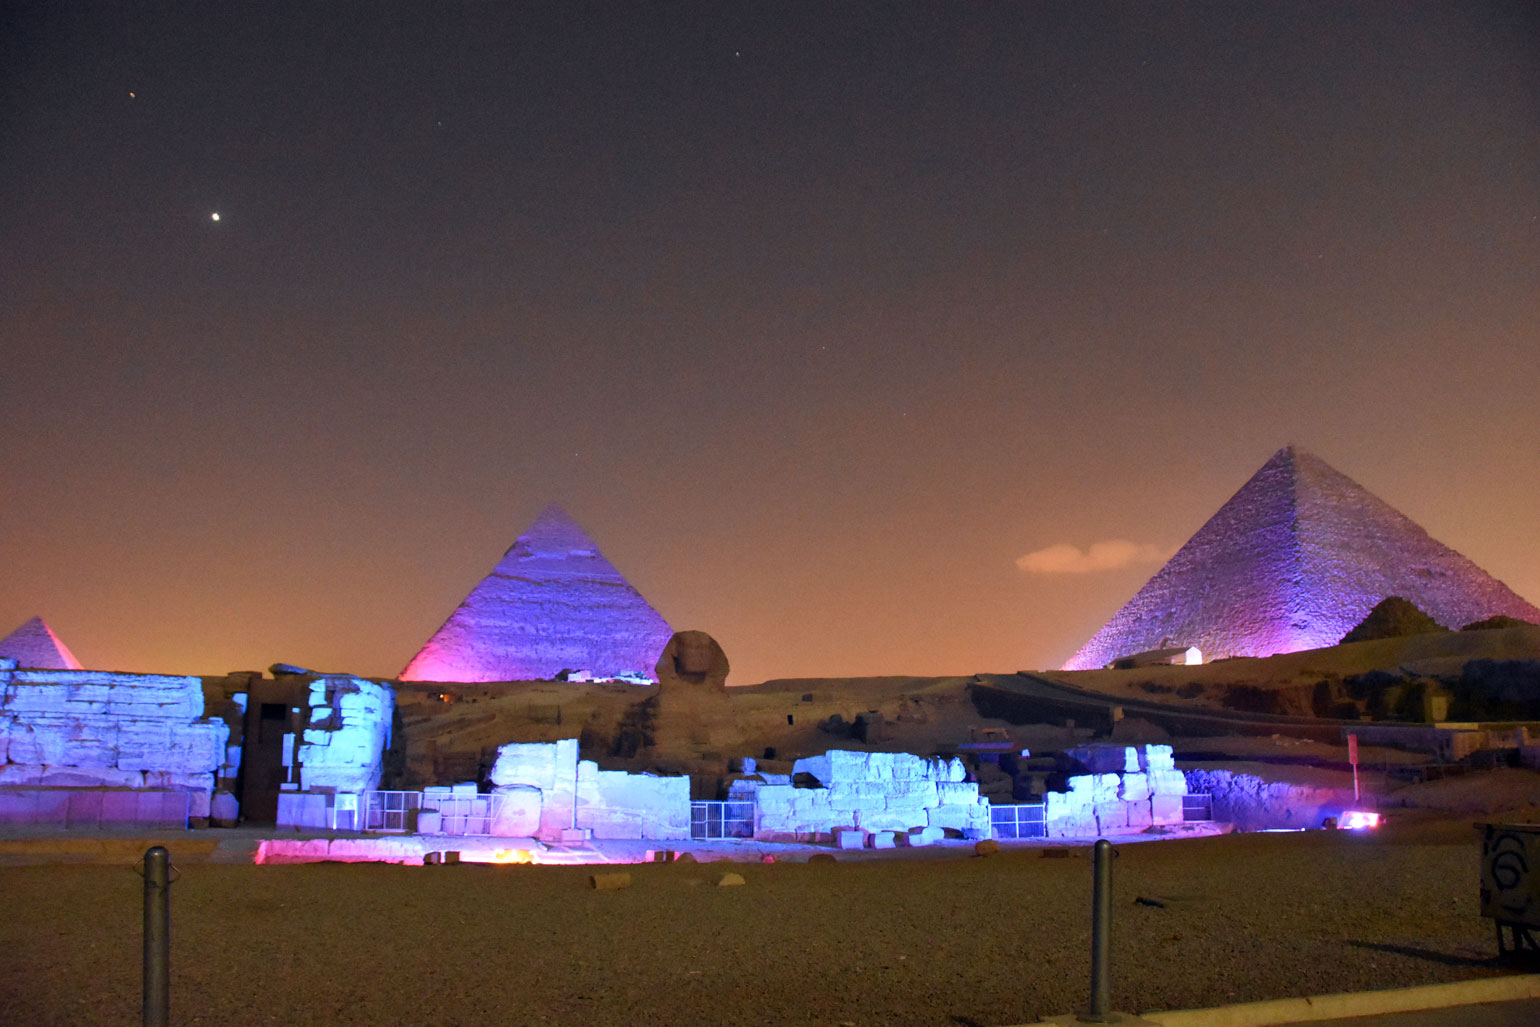 Pyramid light show